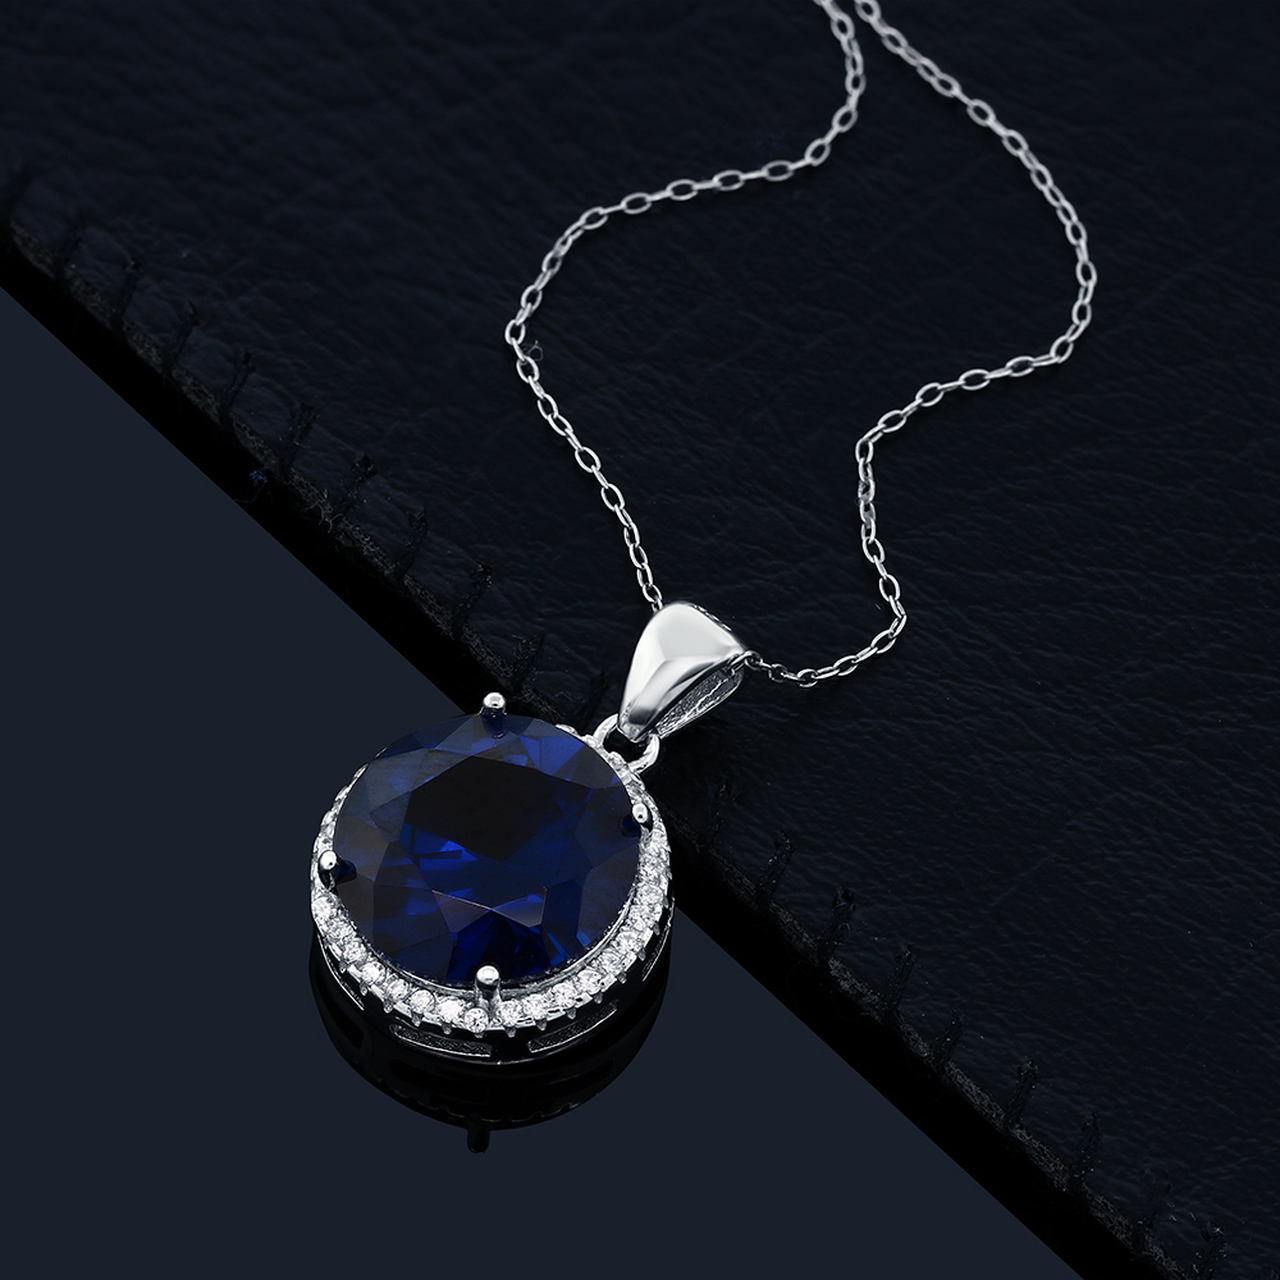 925 Sterling Silver Sapphire Pendant Necklace For Women Fashion Jewelry